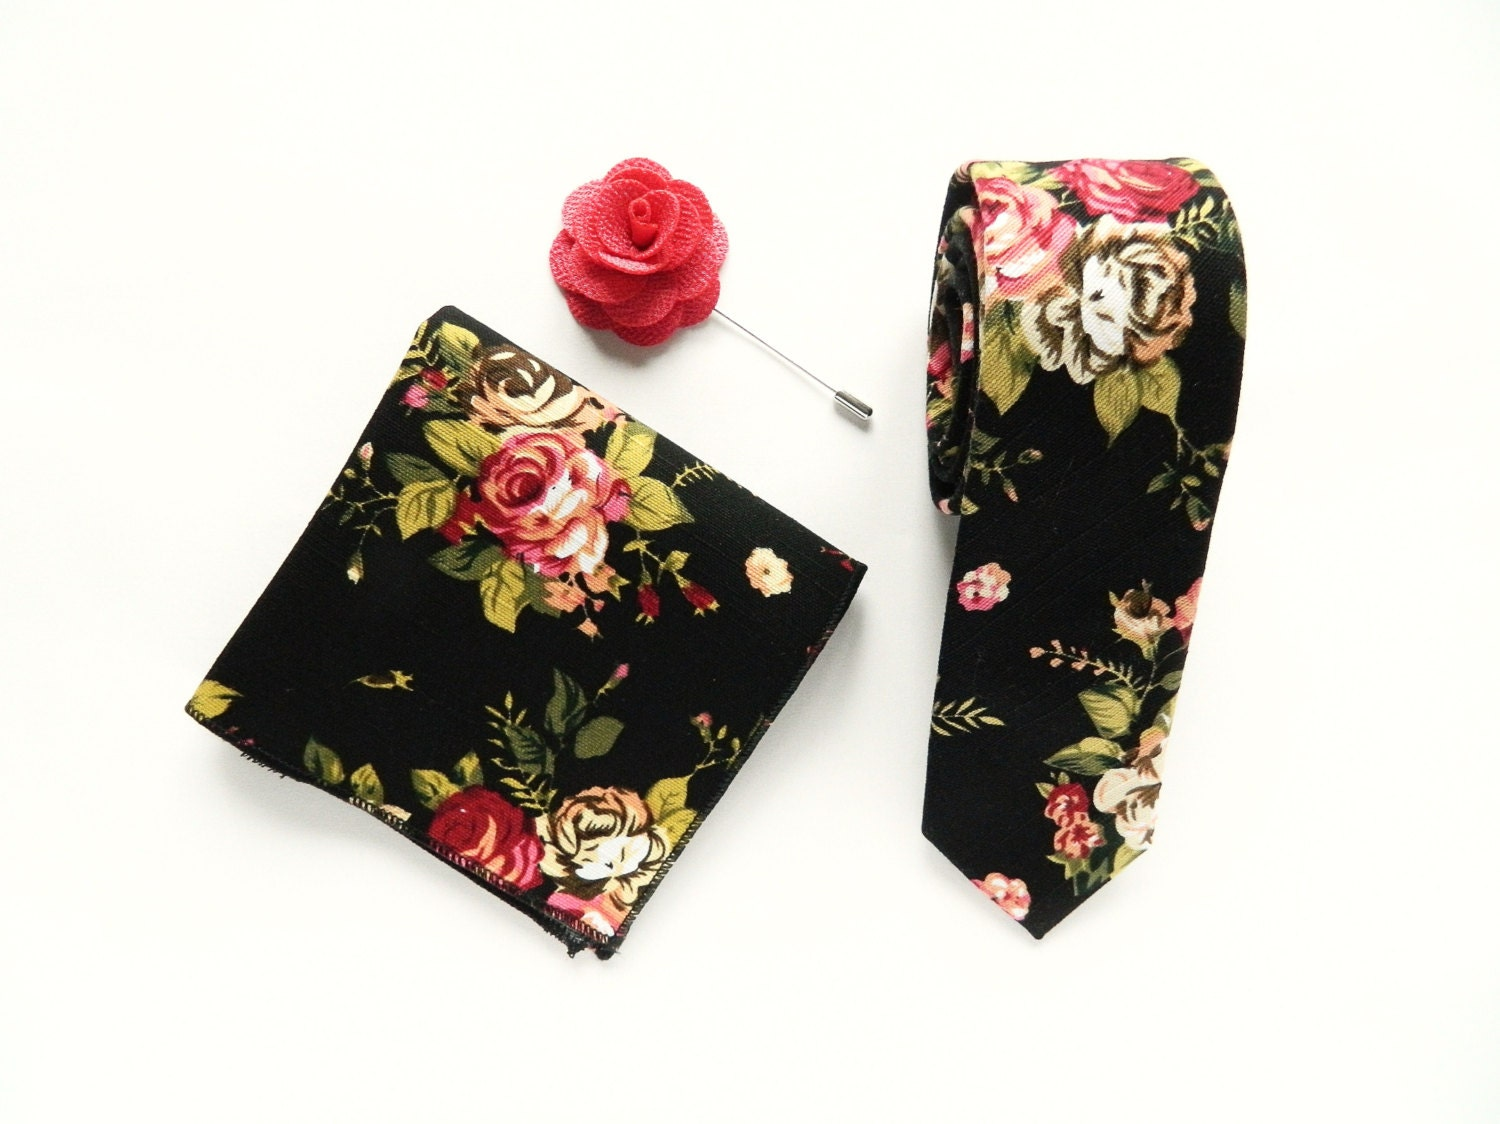 s black floral tie pocket square wedding tie gift for